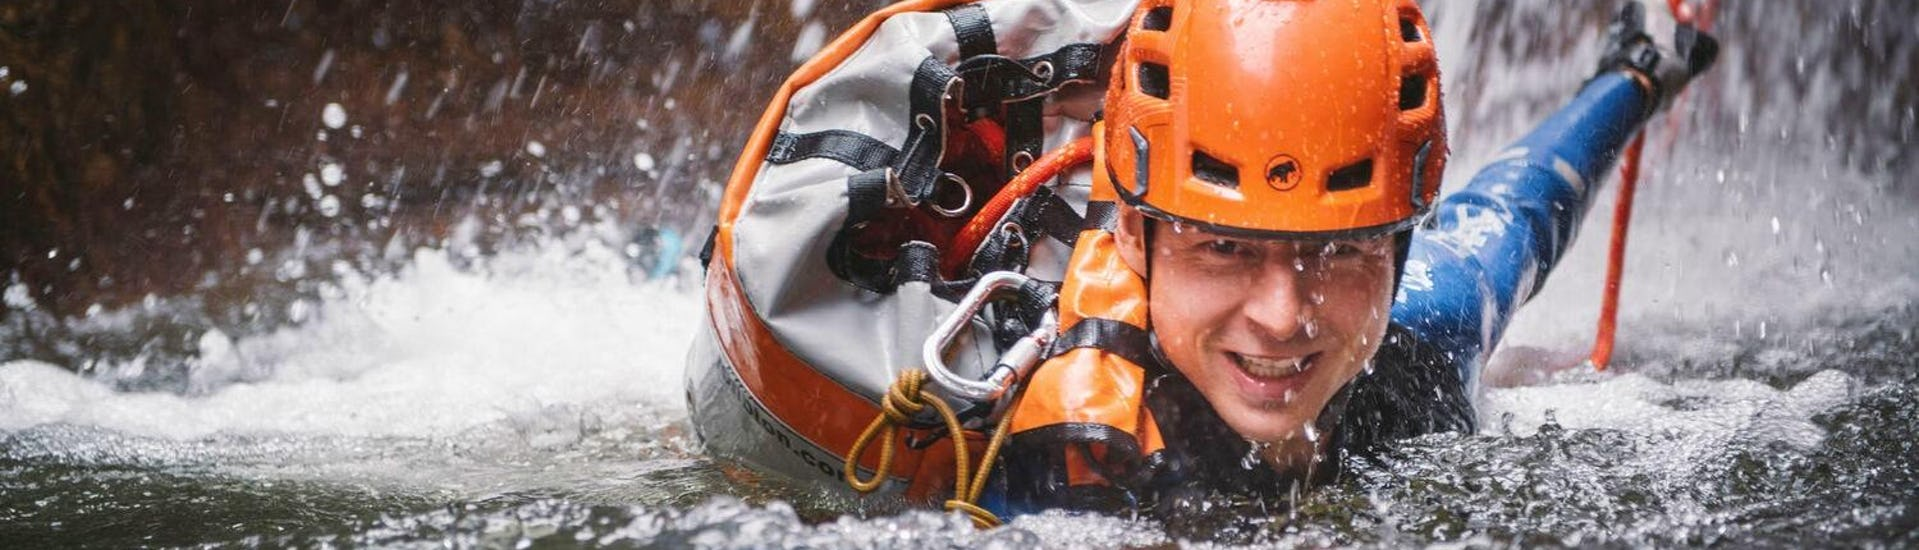 canyoning-for-thrill-seekers-deep-roots-adventures-hero